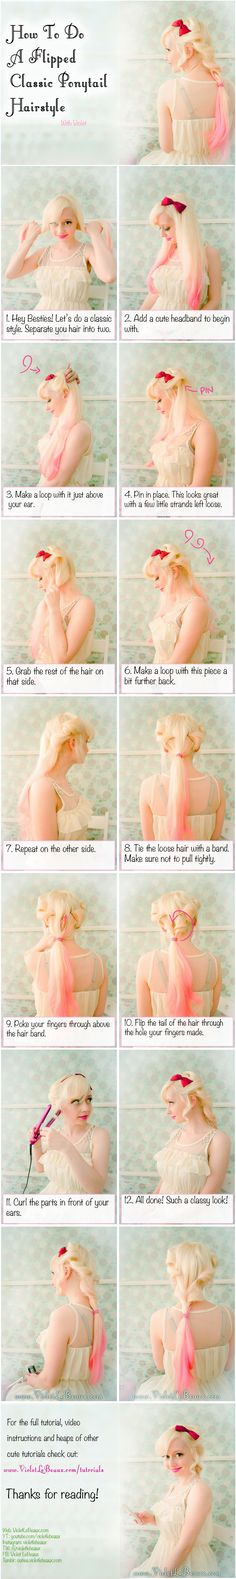 Classic Flipped Hairstyle Tutorial | Violet LeBeaux- Cute Free Craft Tutorials